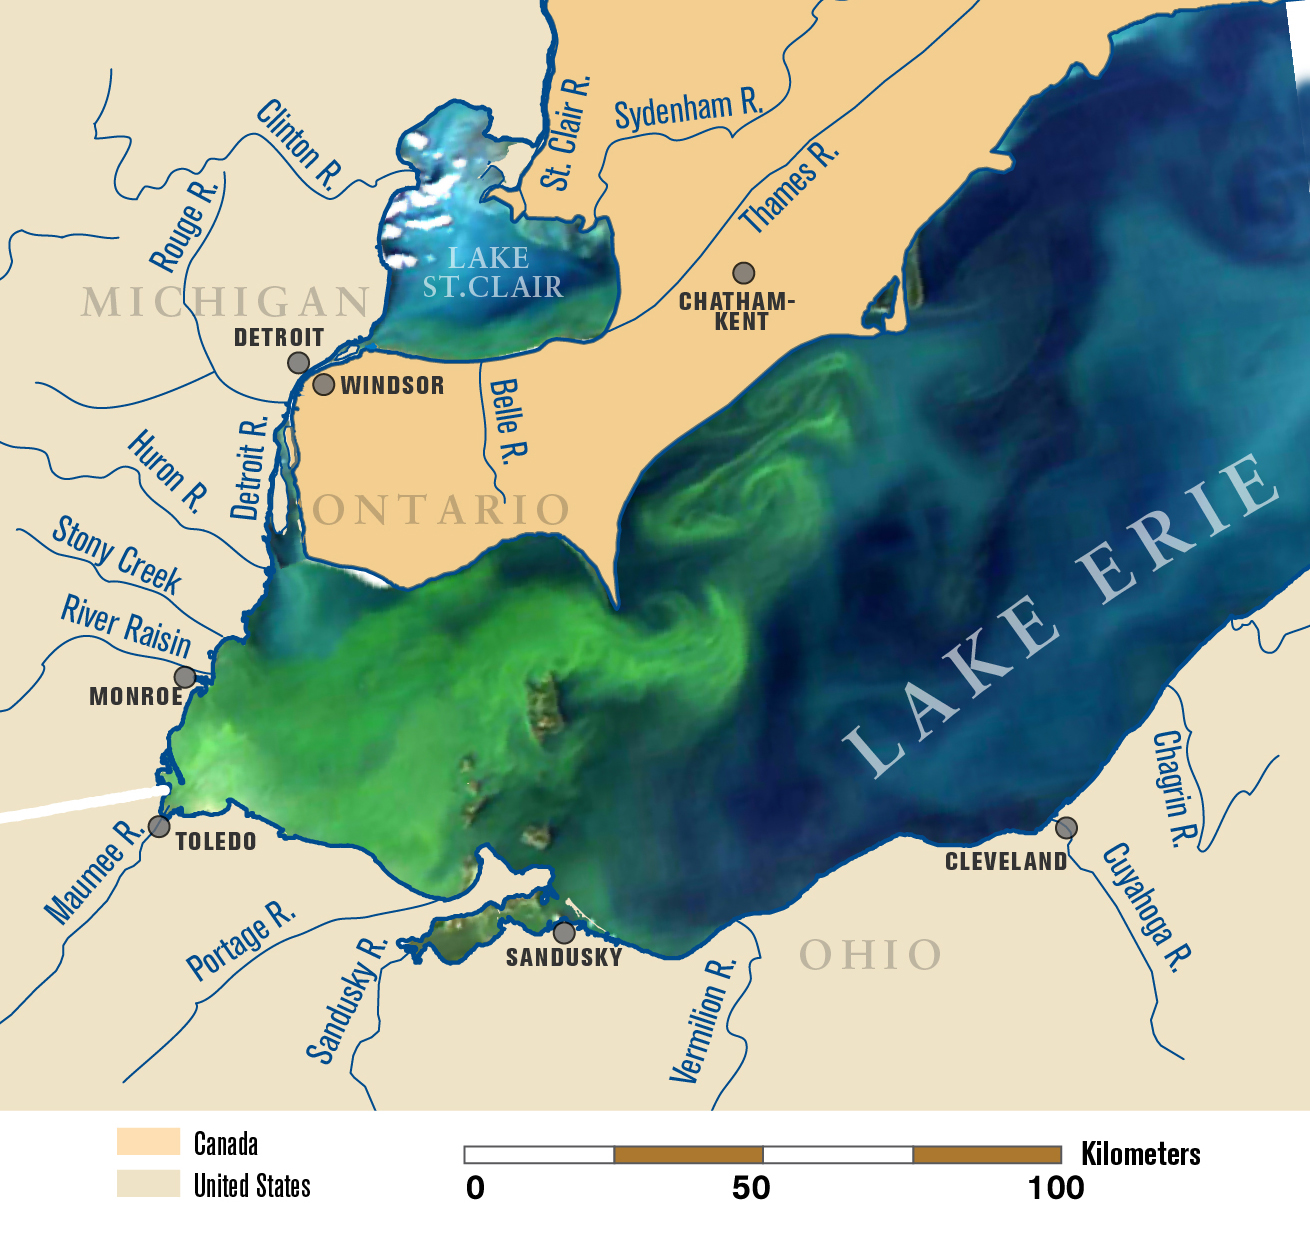 western lake erie map The New Normal Record Breaking 2011 Lake Erie Algae Bloom May Be western lake erie map